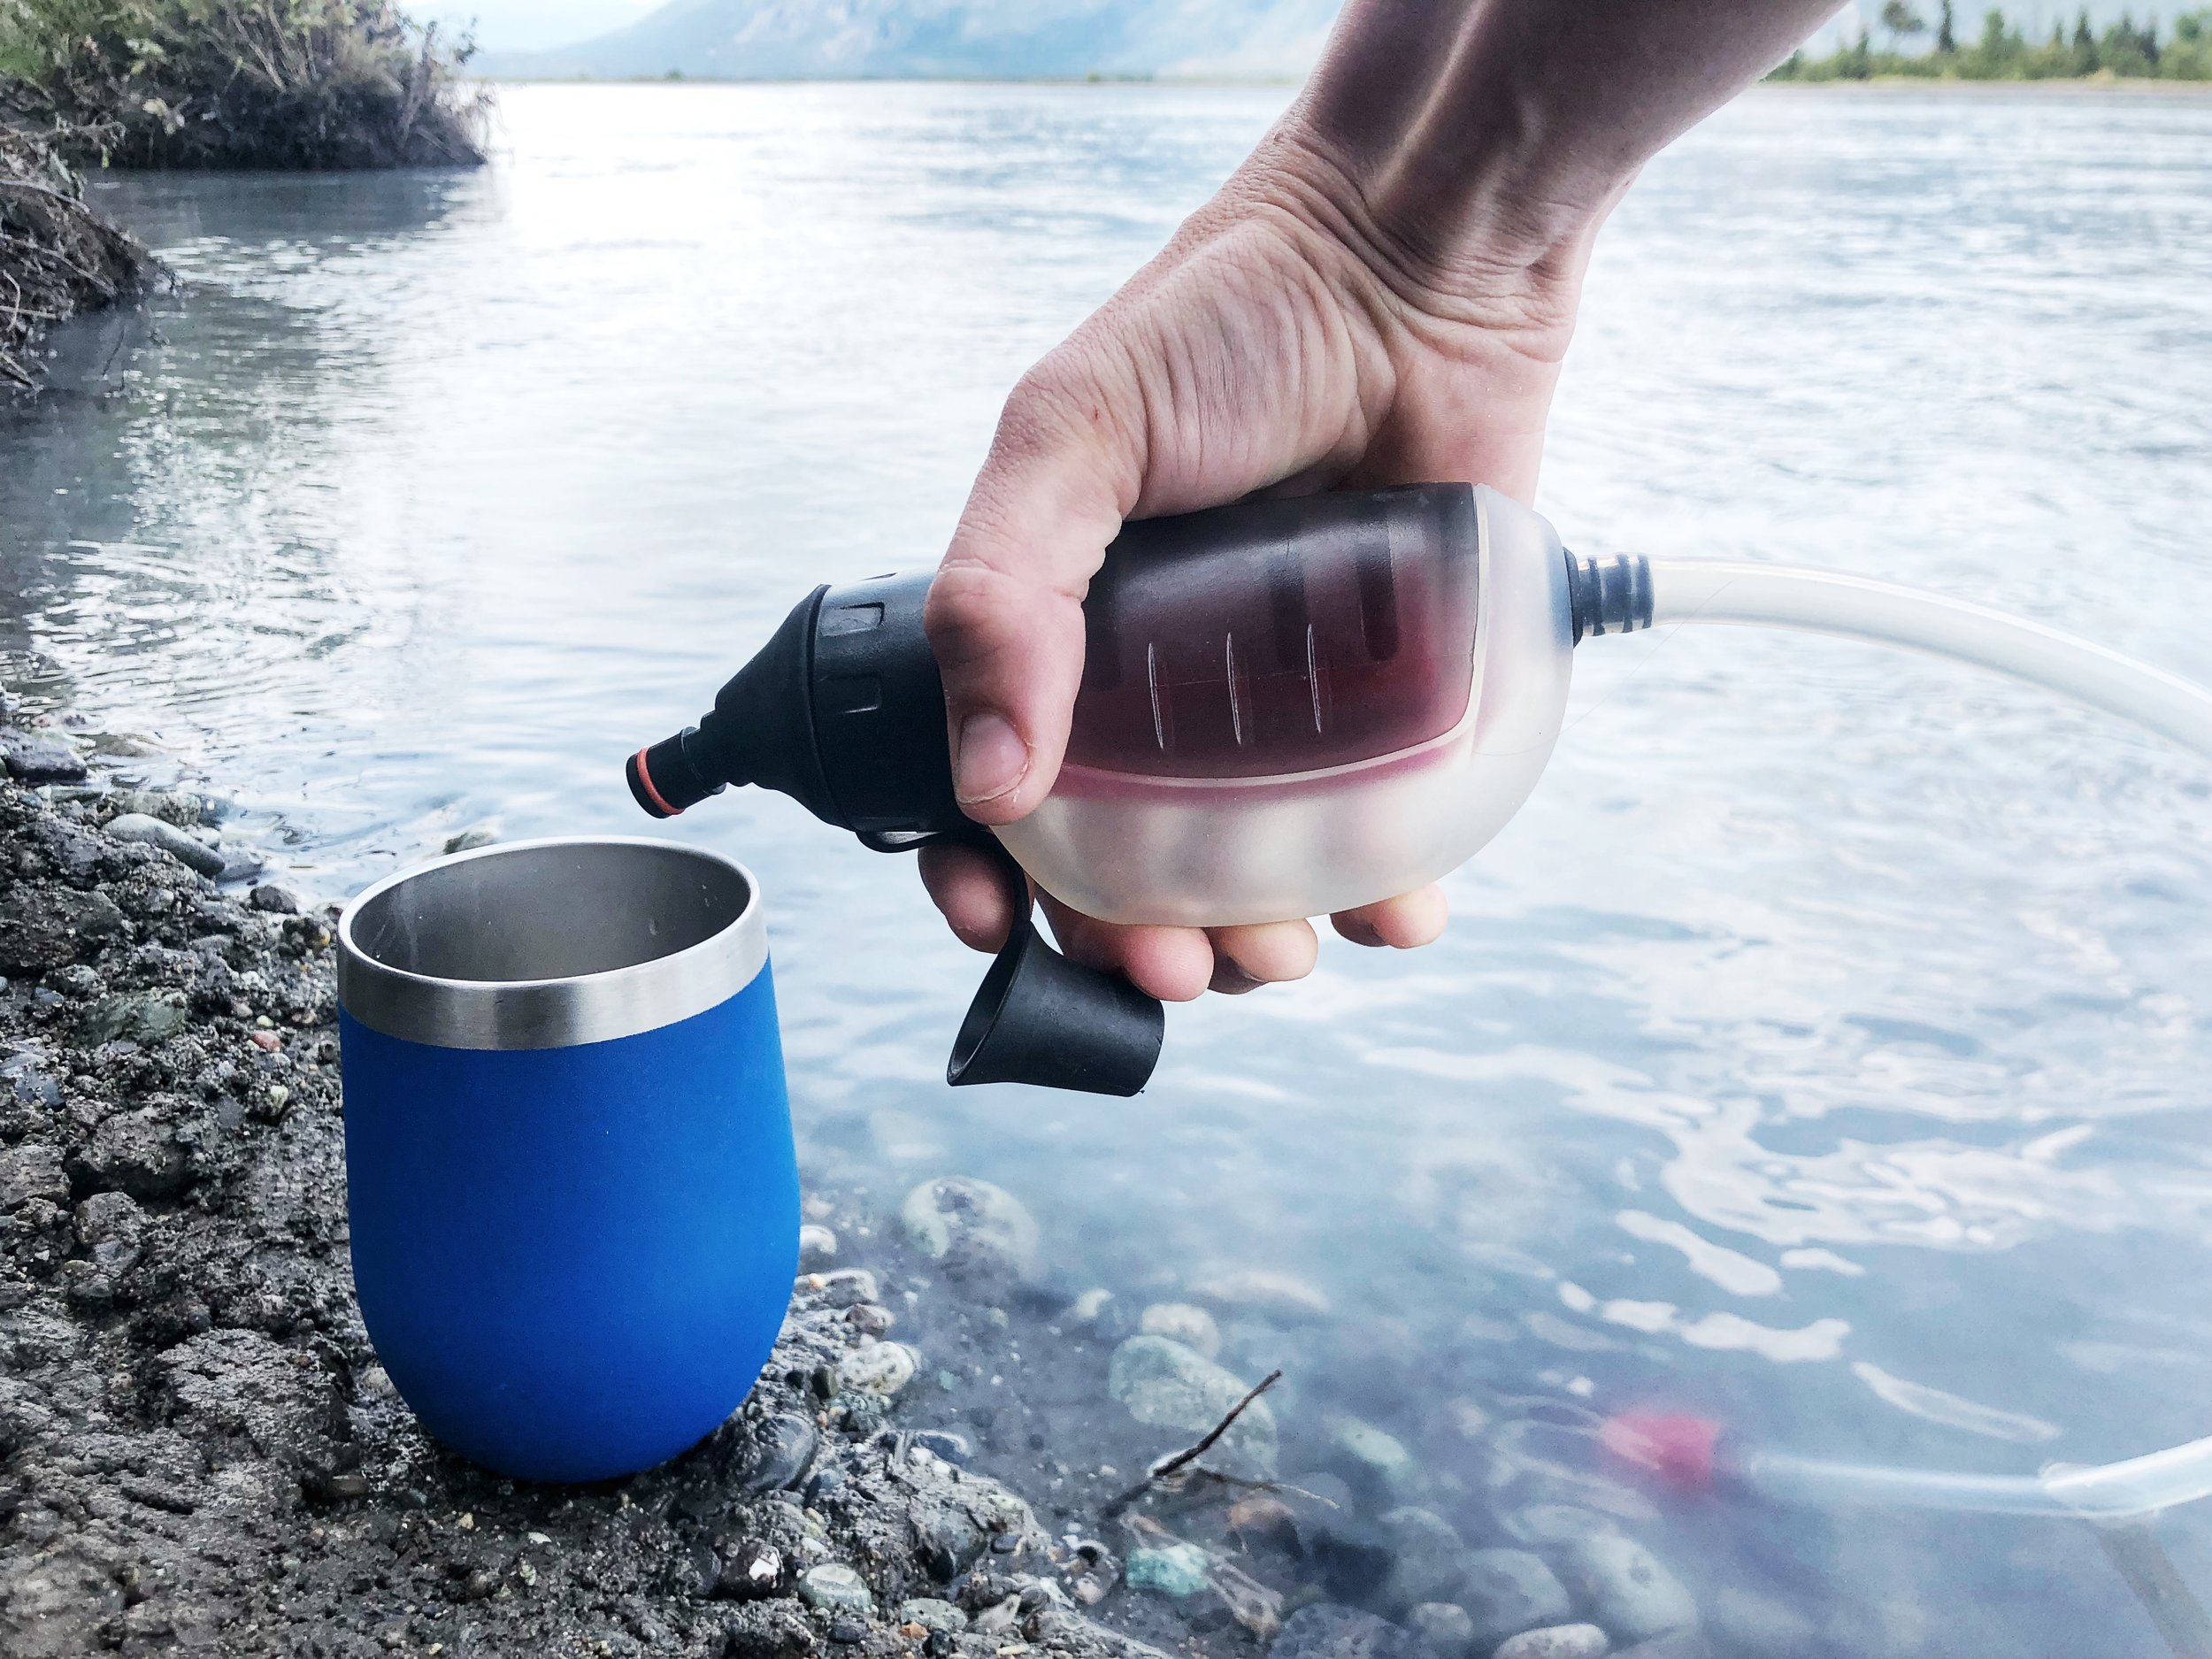 The MSR TrailShot works wonders, even in Alaska waters, which are chalk full of glacial silt.